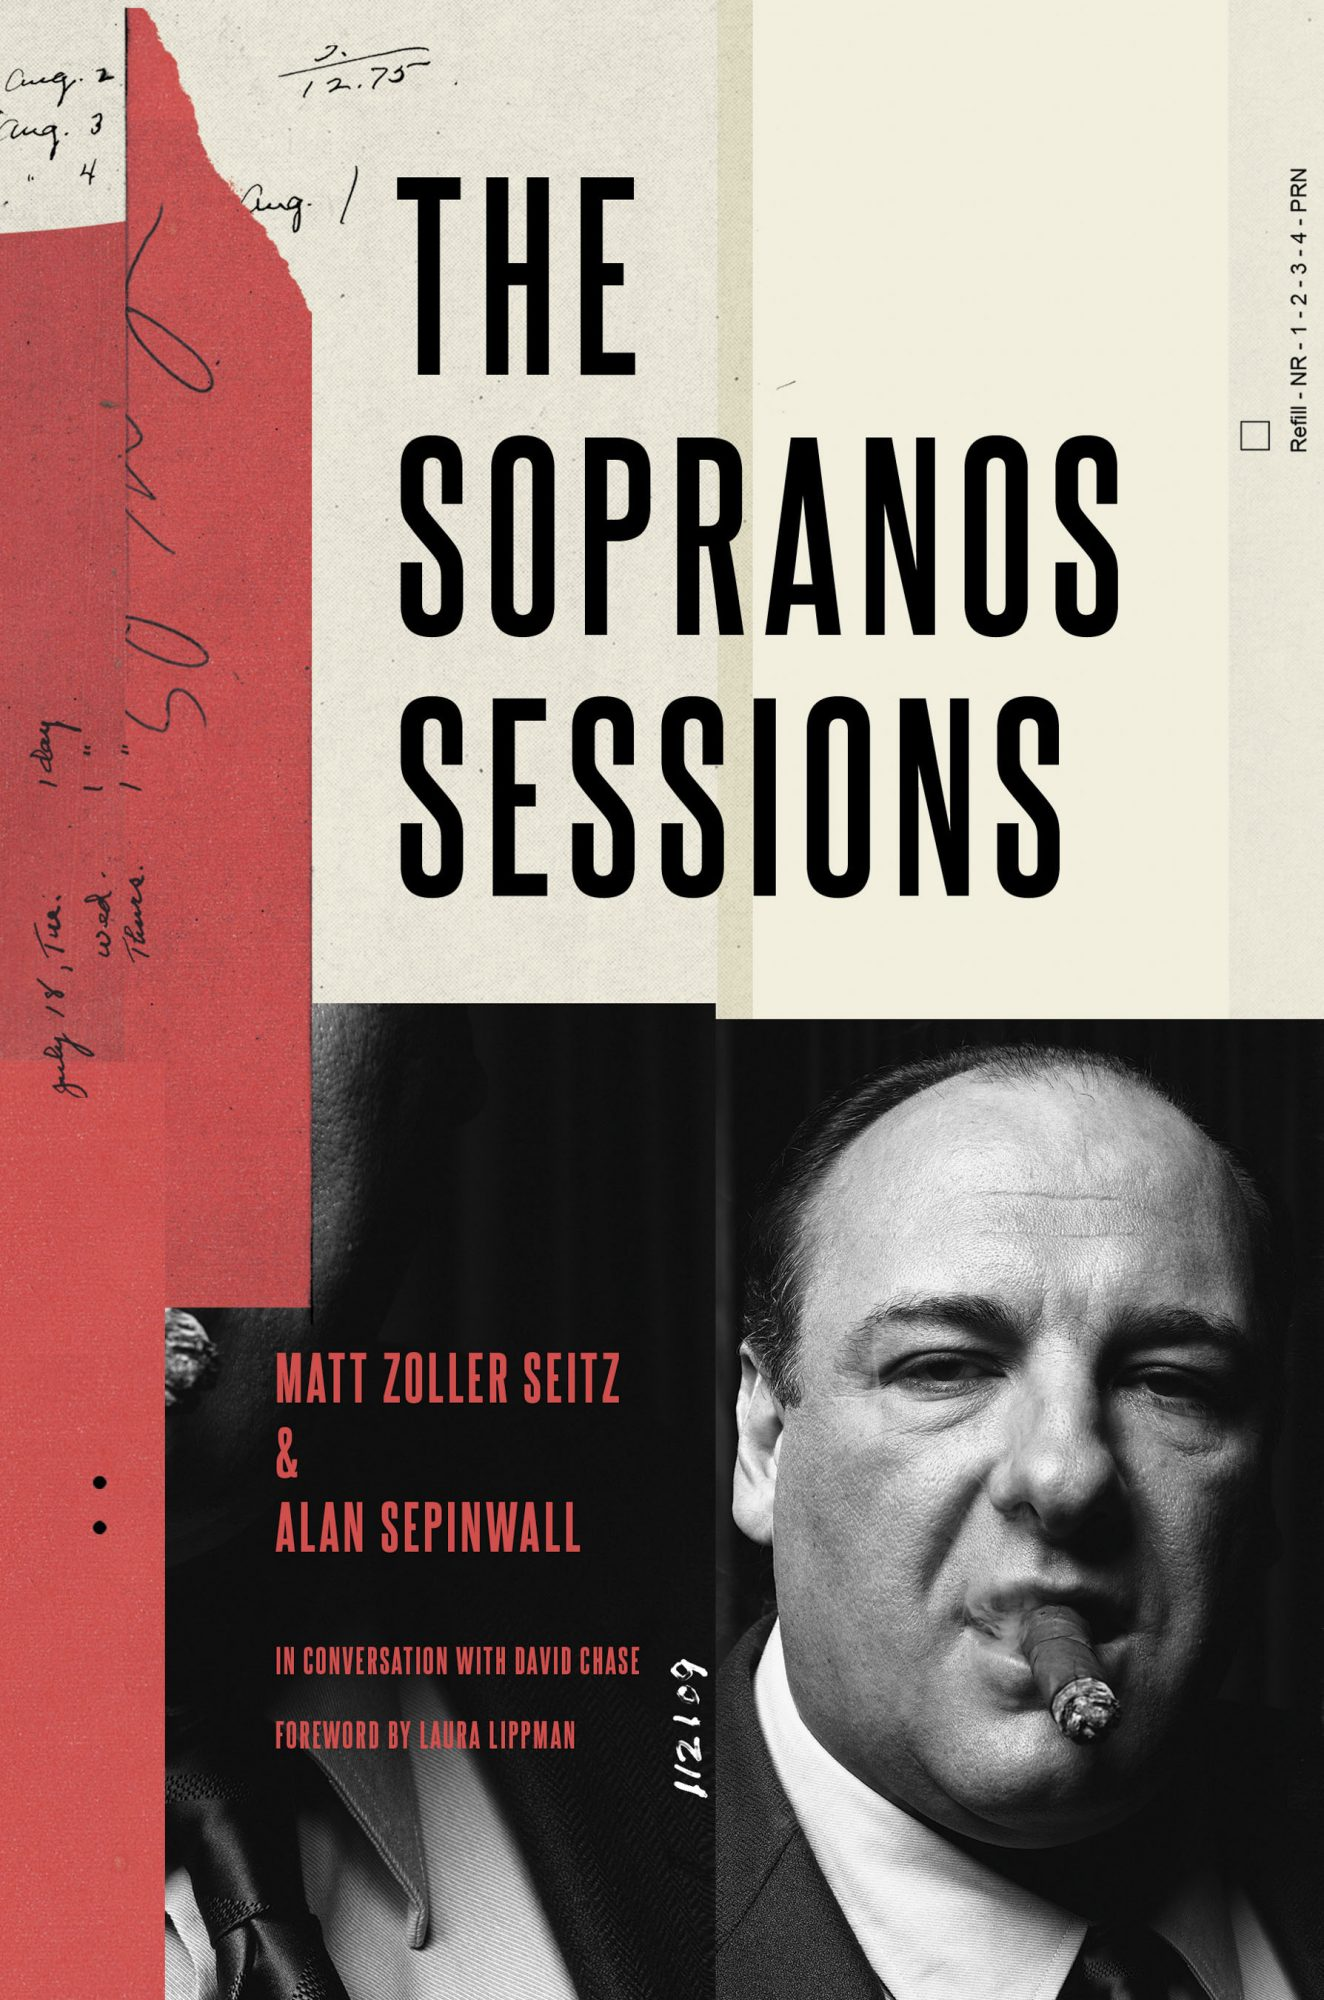 The Sopranos Sessions, by Matt Zoller Seitz and Alan Sepinwall